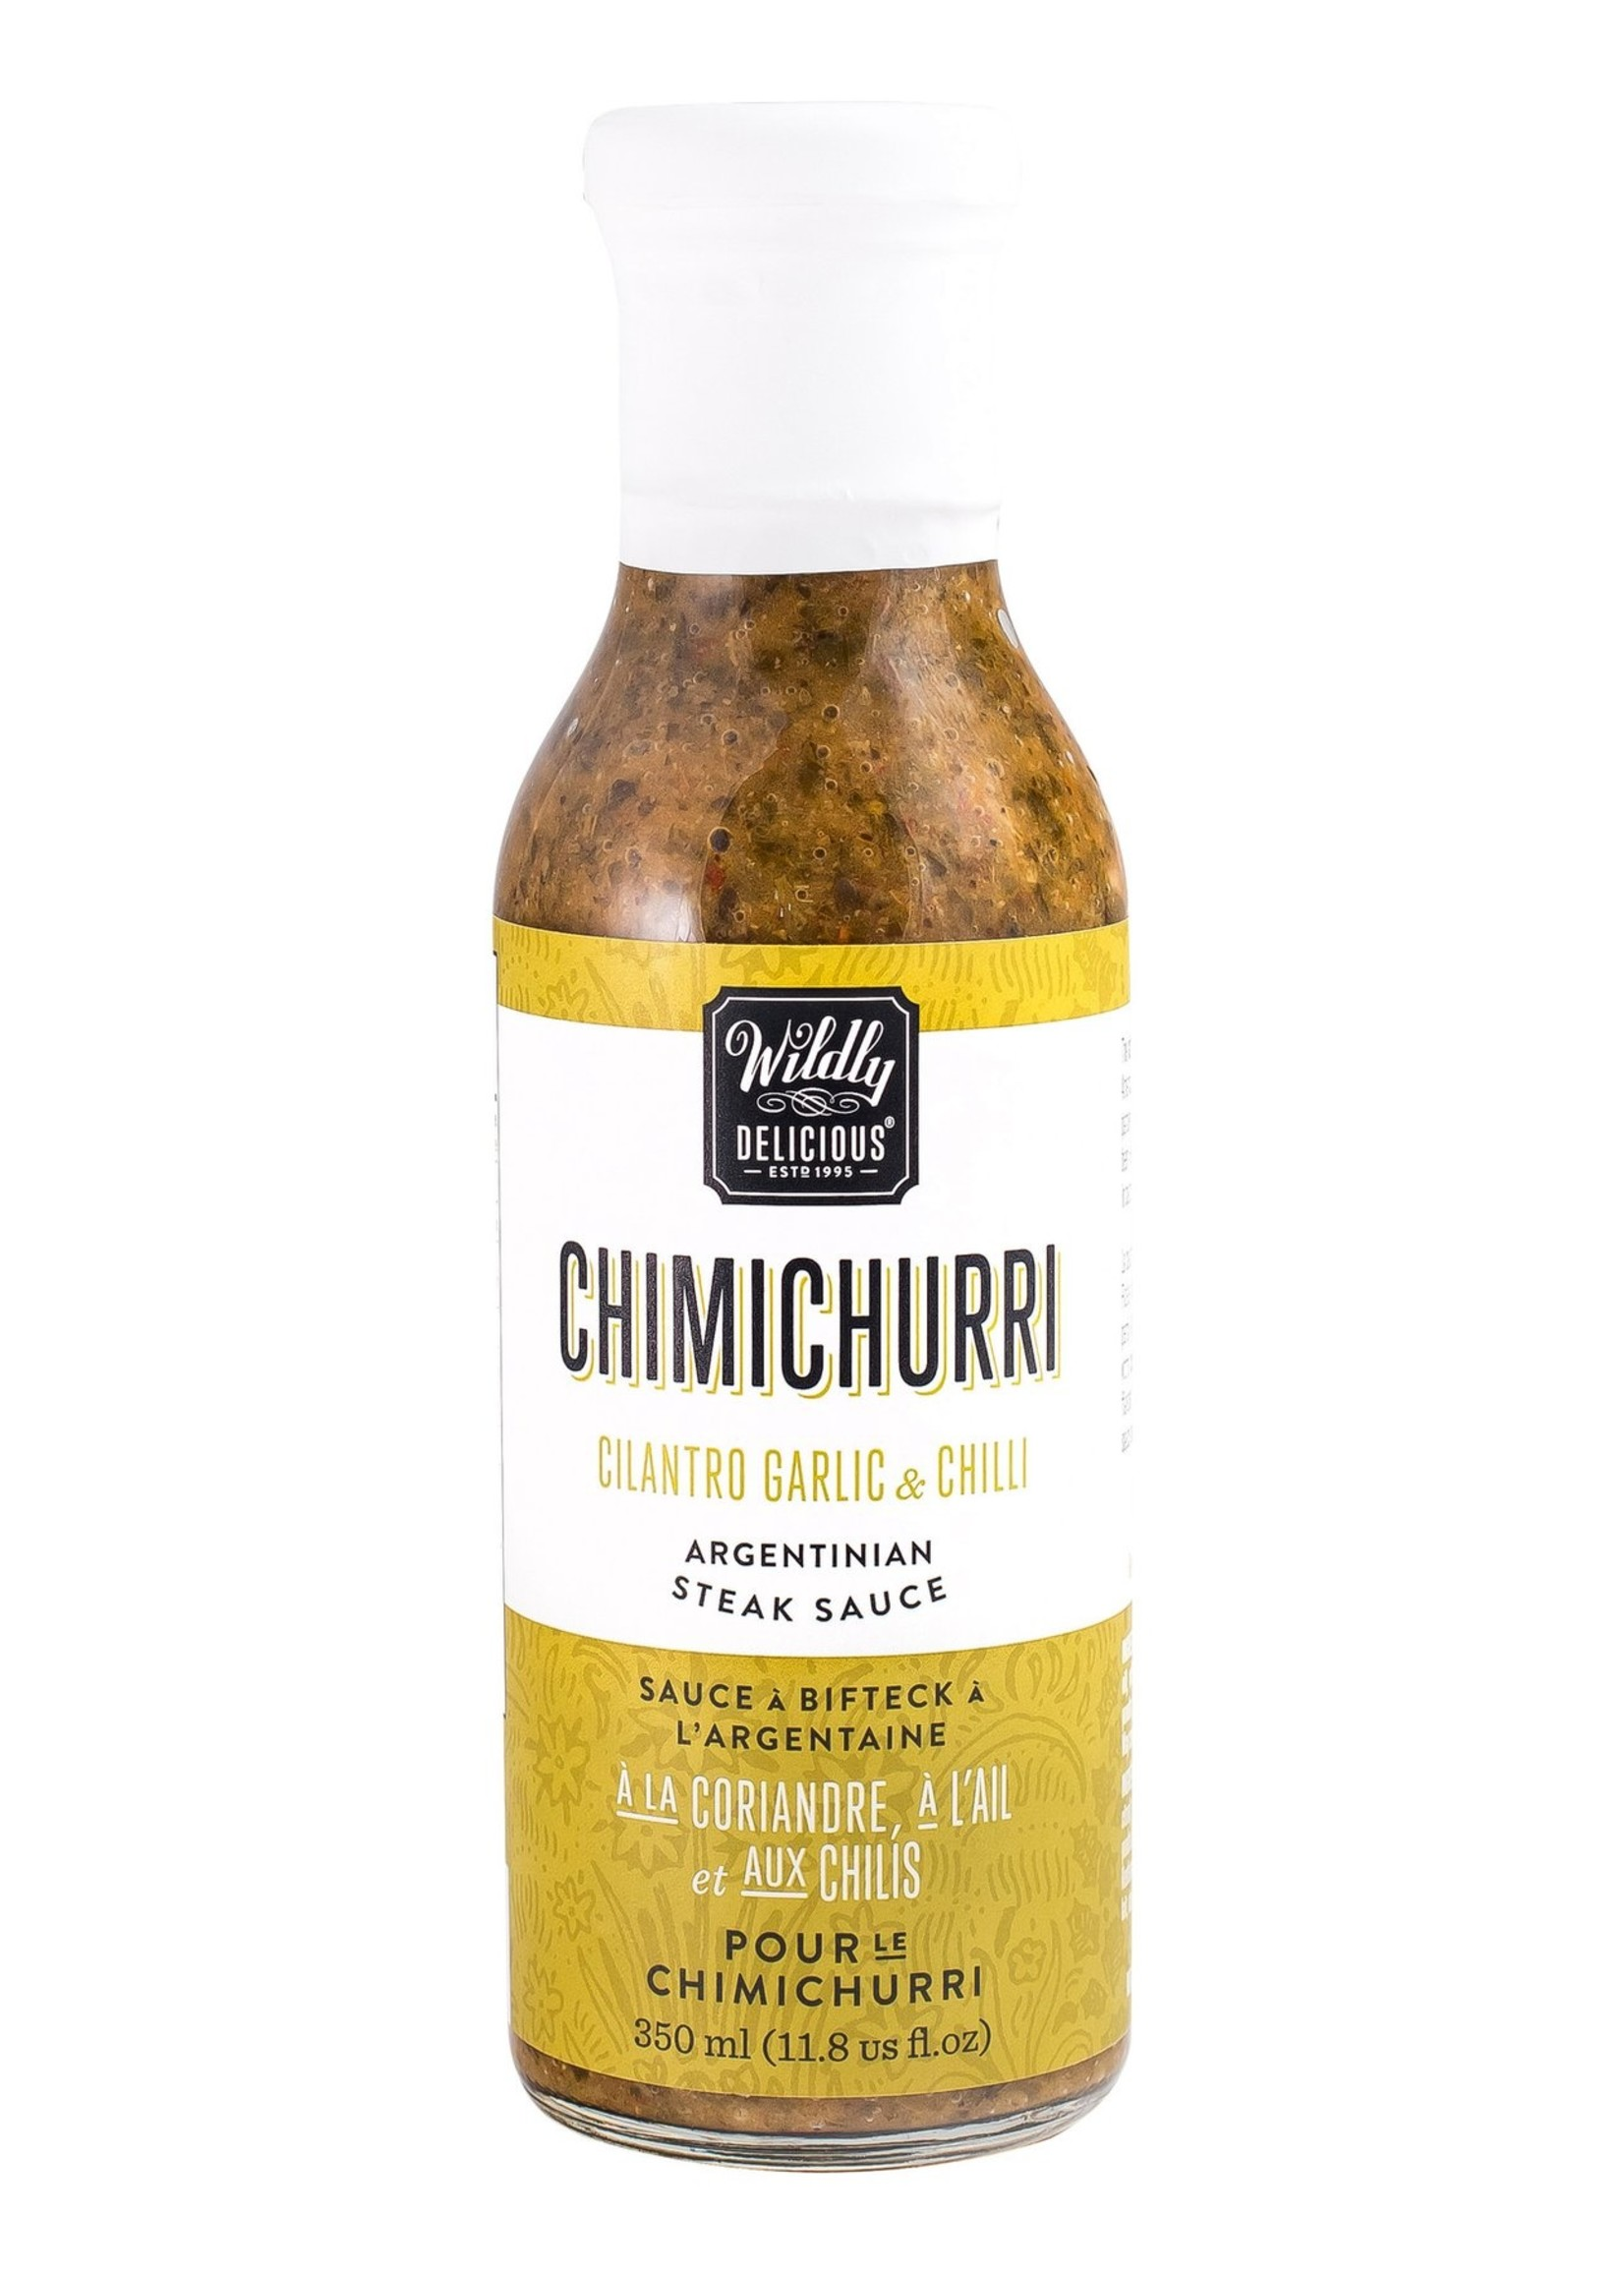 Wildly Delicious Chimichurri - Argentinian Steak Sauce